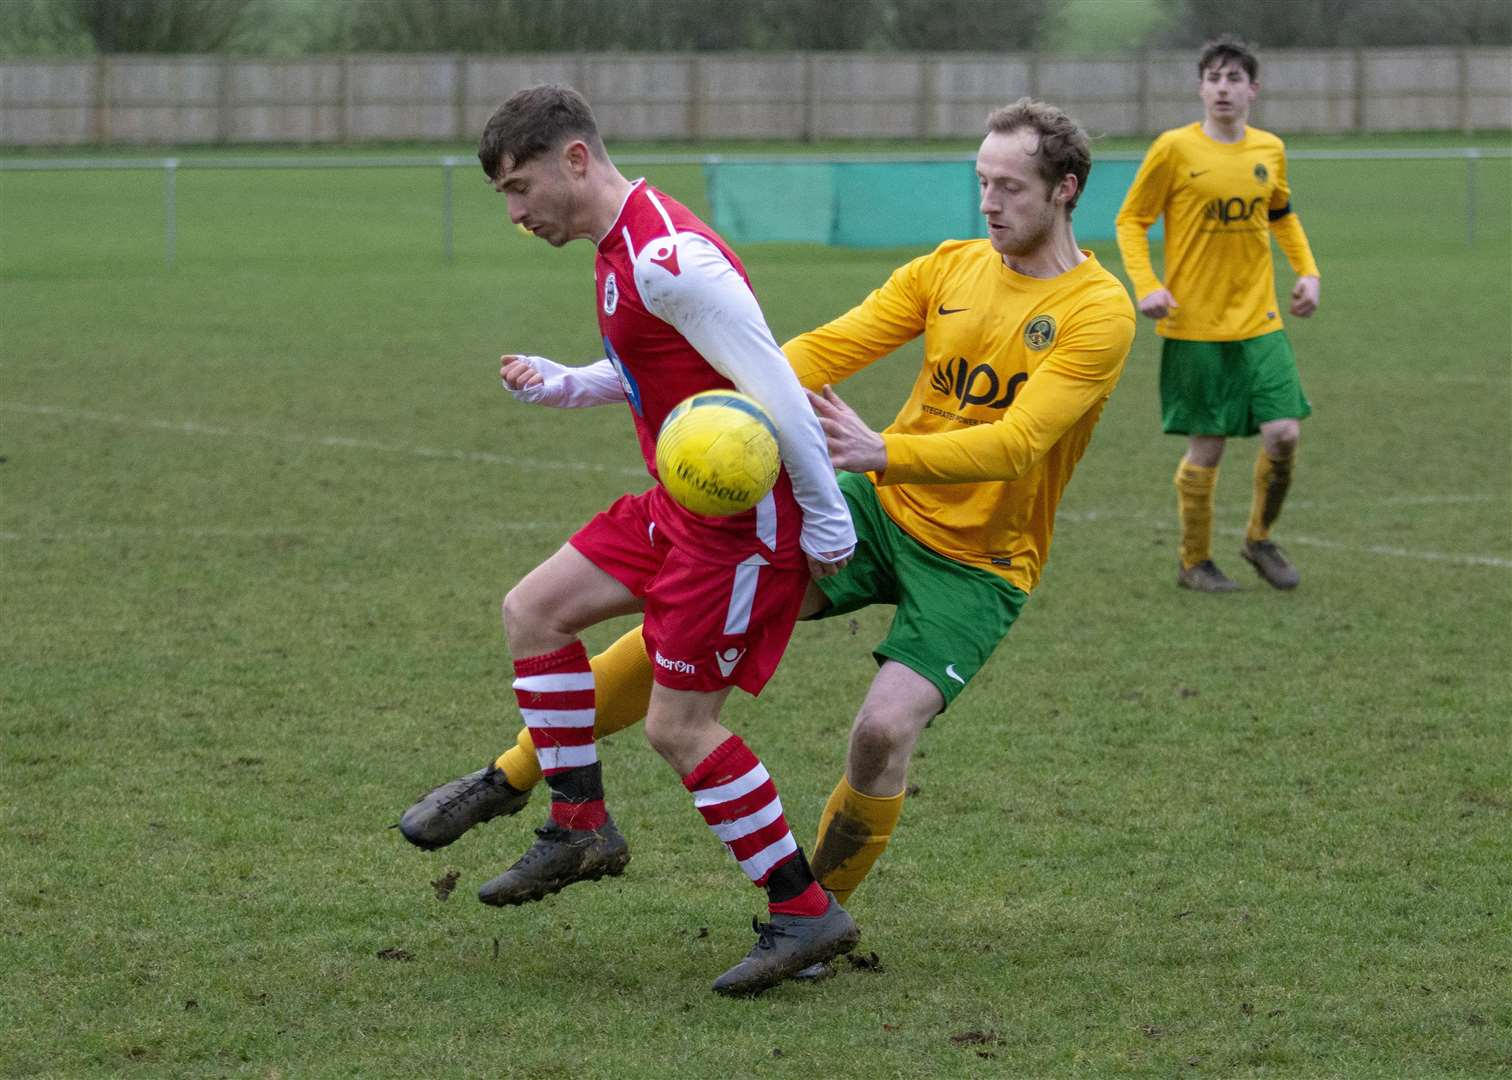 Oakham United ran out 5-2 winners against Langtoft on Saturday. Photo: lee Hellwing (6700243)